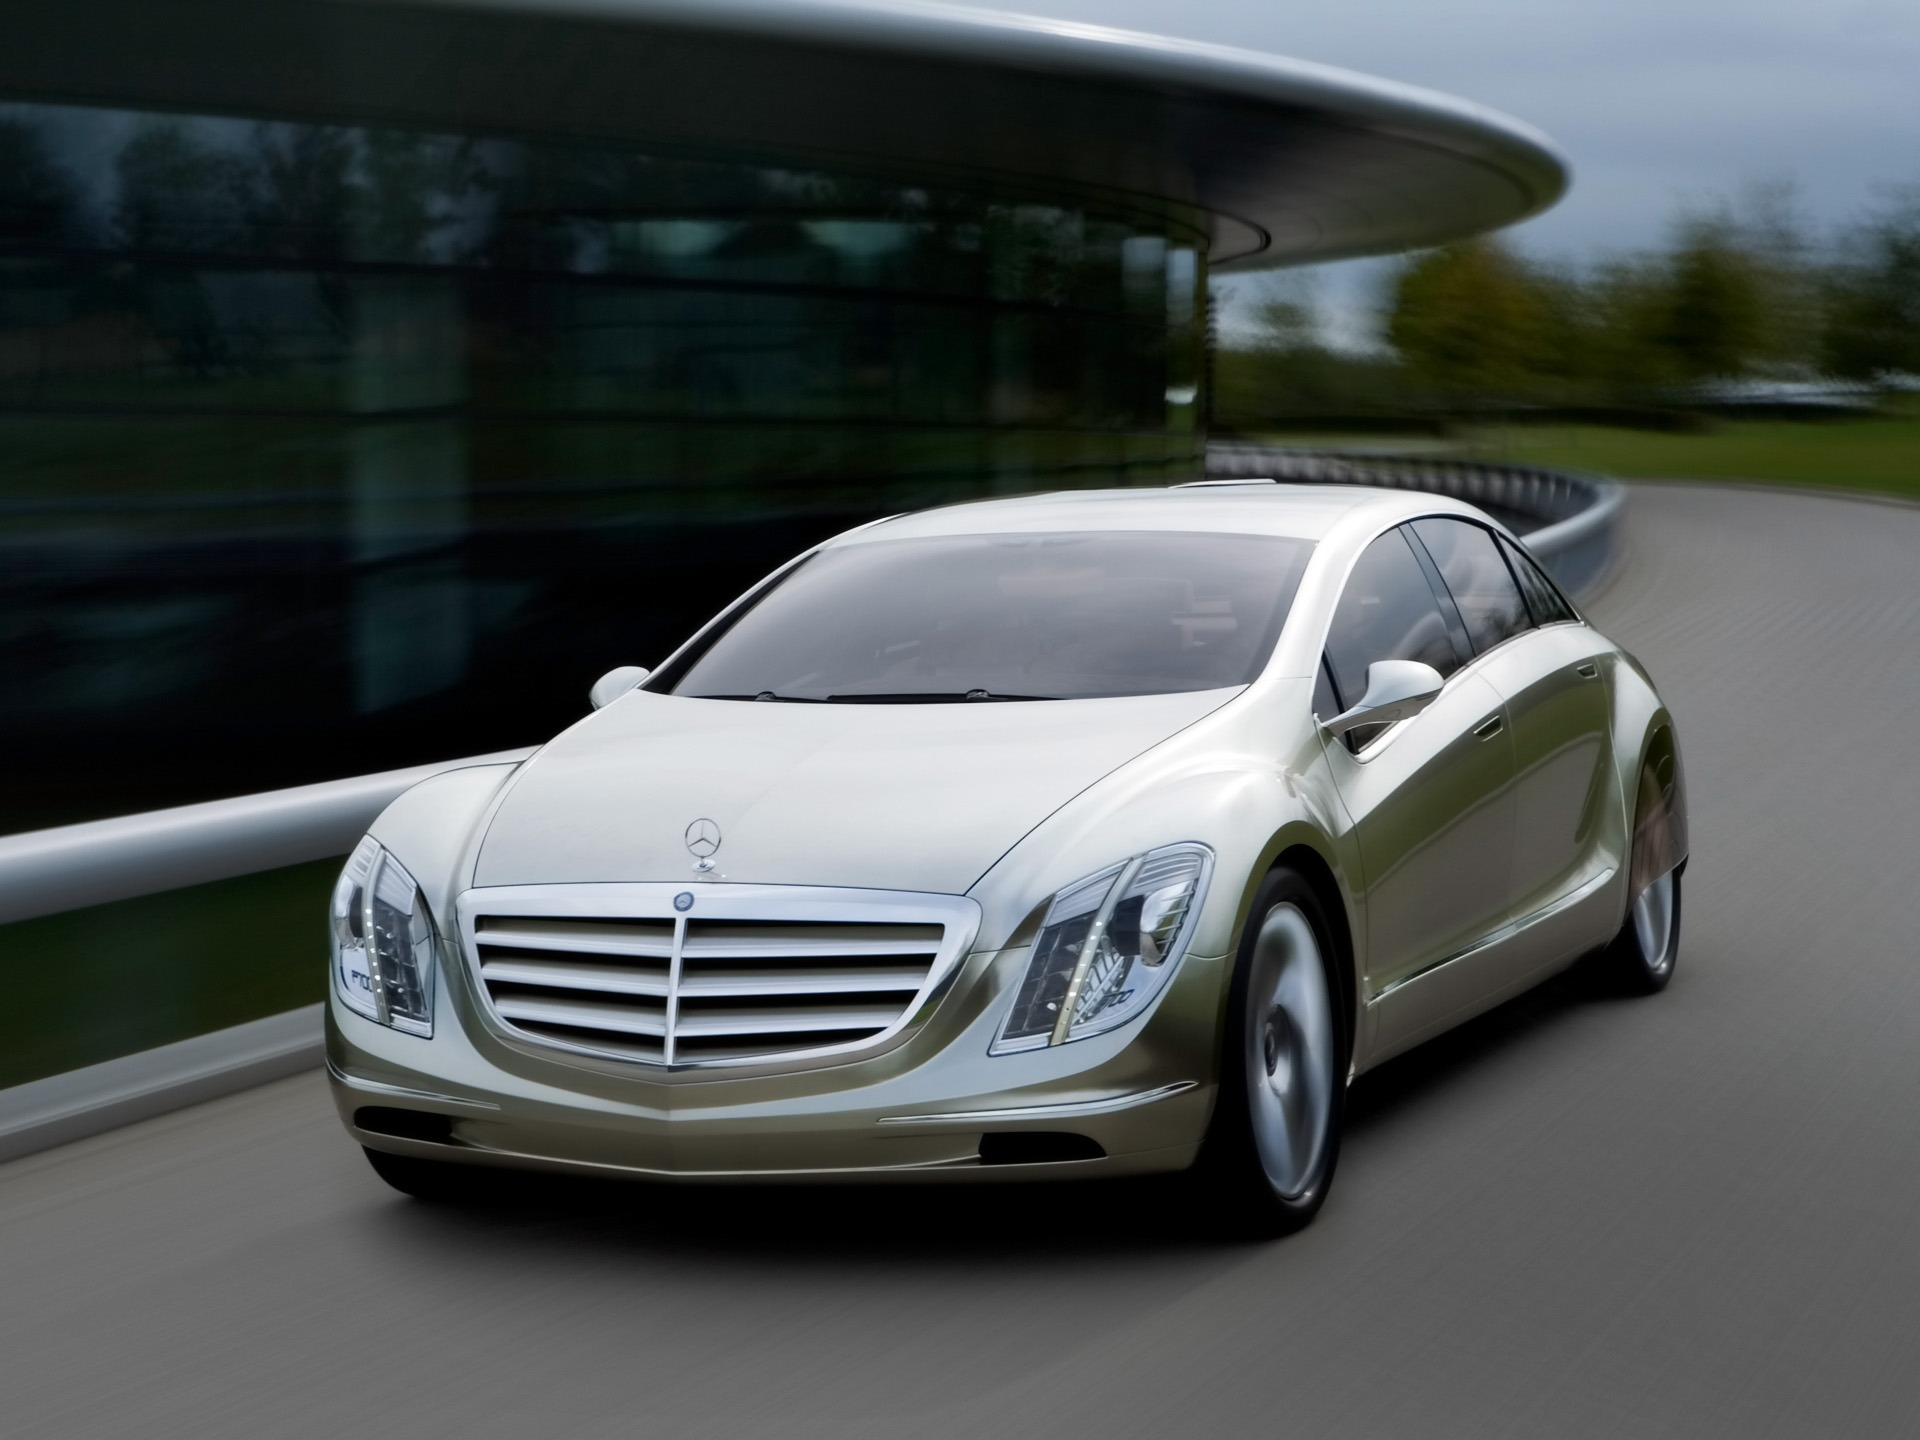 Mercedes Benz F Wallpaper Mercedes Cars Wallpapers In Jpg Format For